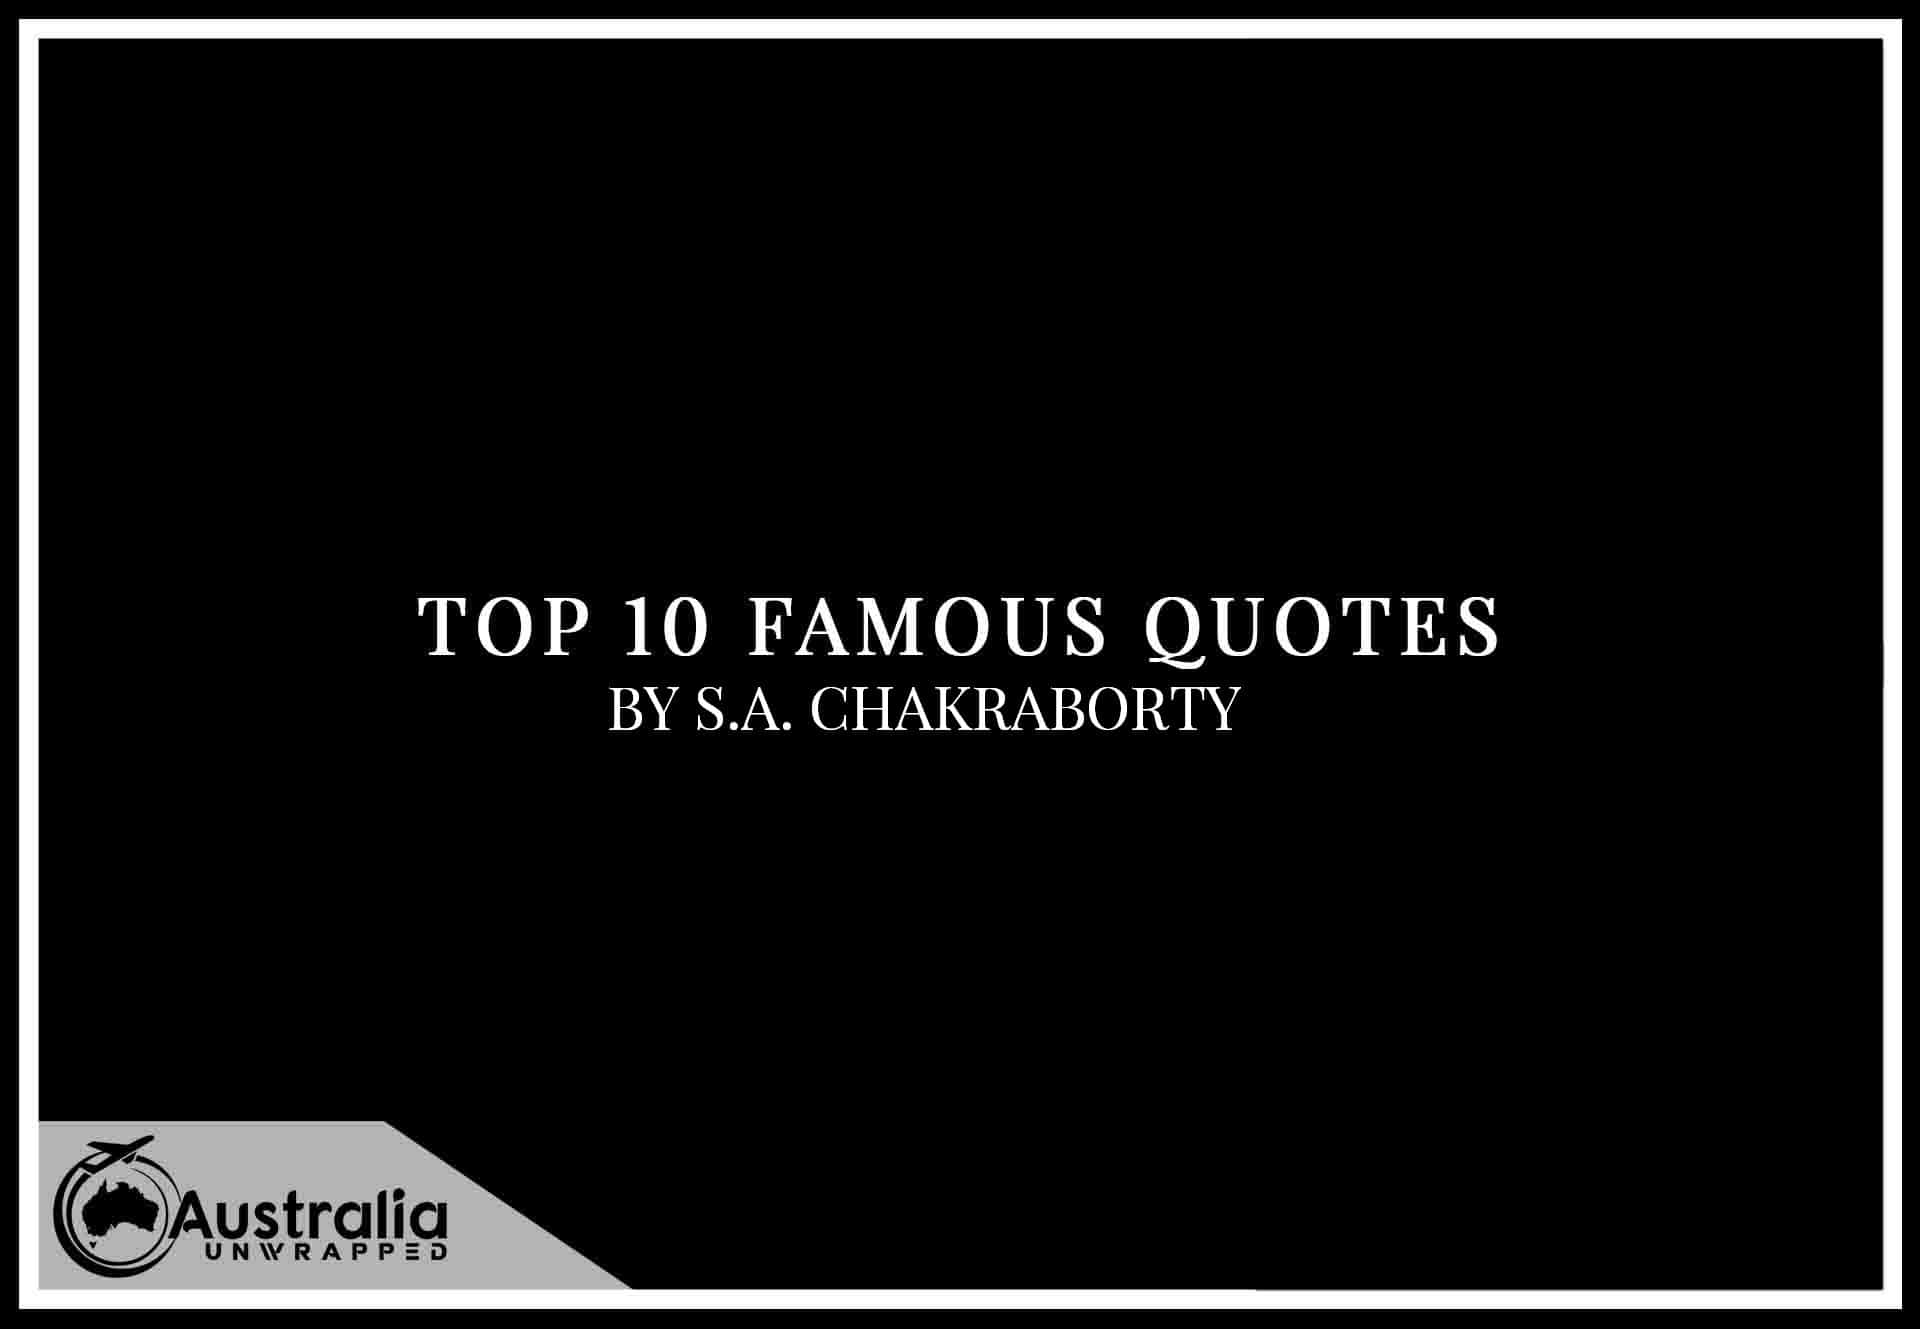 Top 10 Famous Quotes by Author S.A. Chakraborty